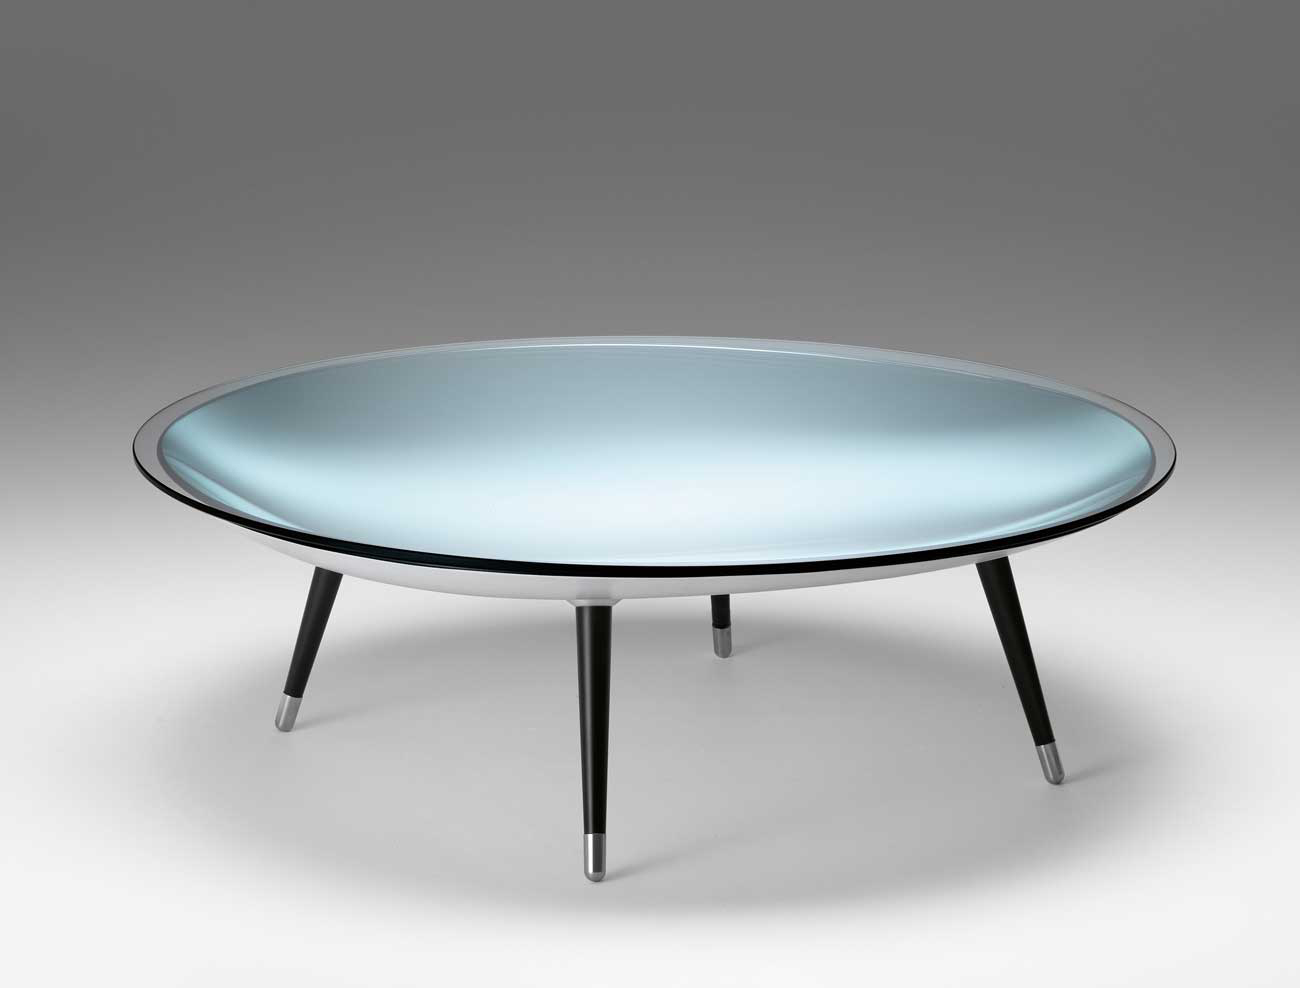 Roy Coffee Table by Doriana e Massimiliano Fuksas for Fiam Italia IMM Cologne 2015 | Yellowtrace